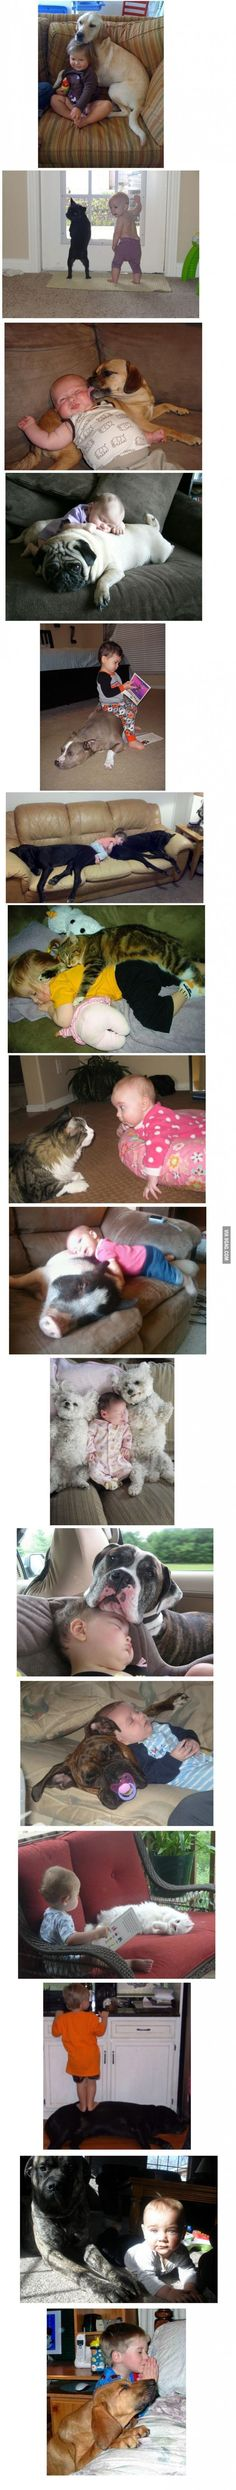 Why do kids need animals? To be cute.